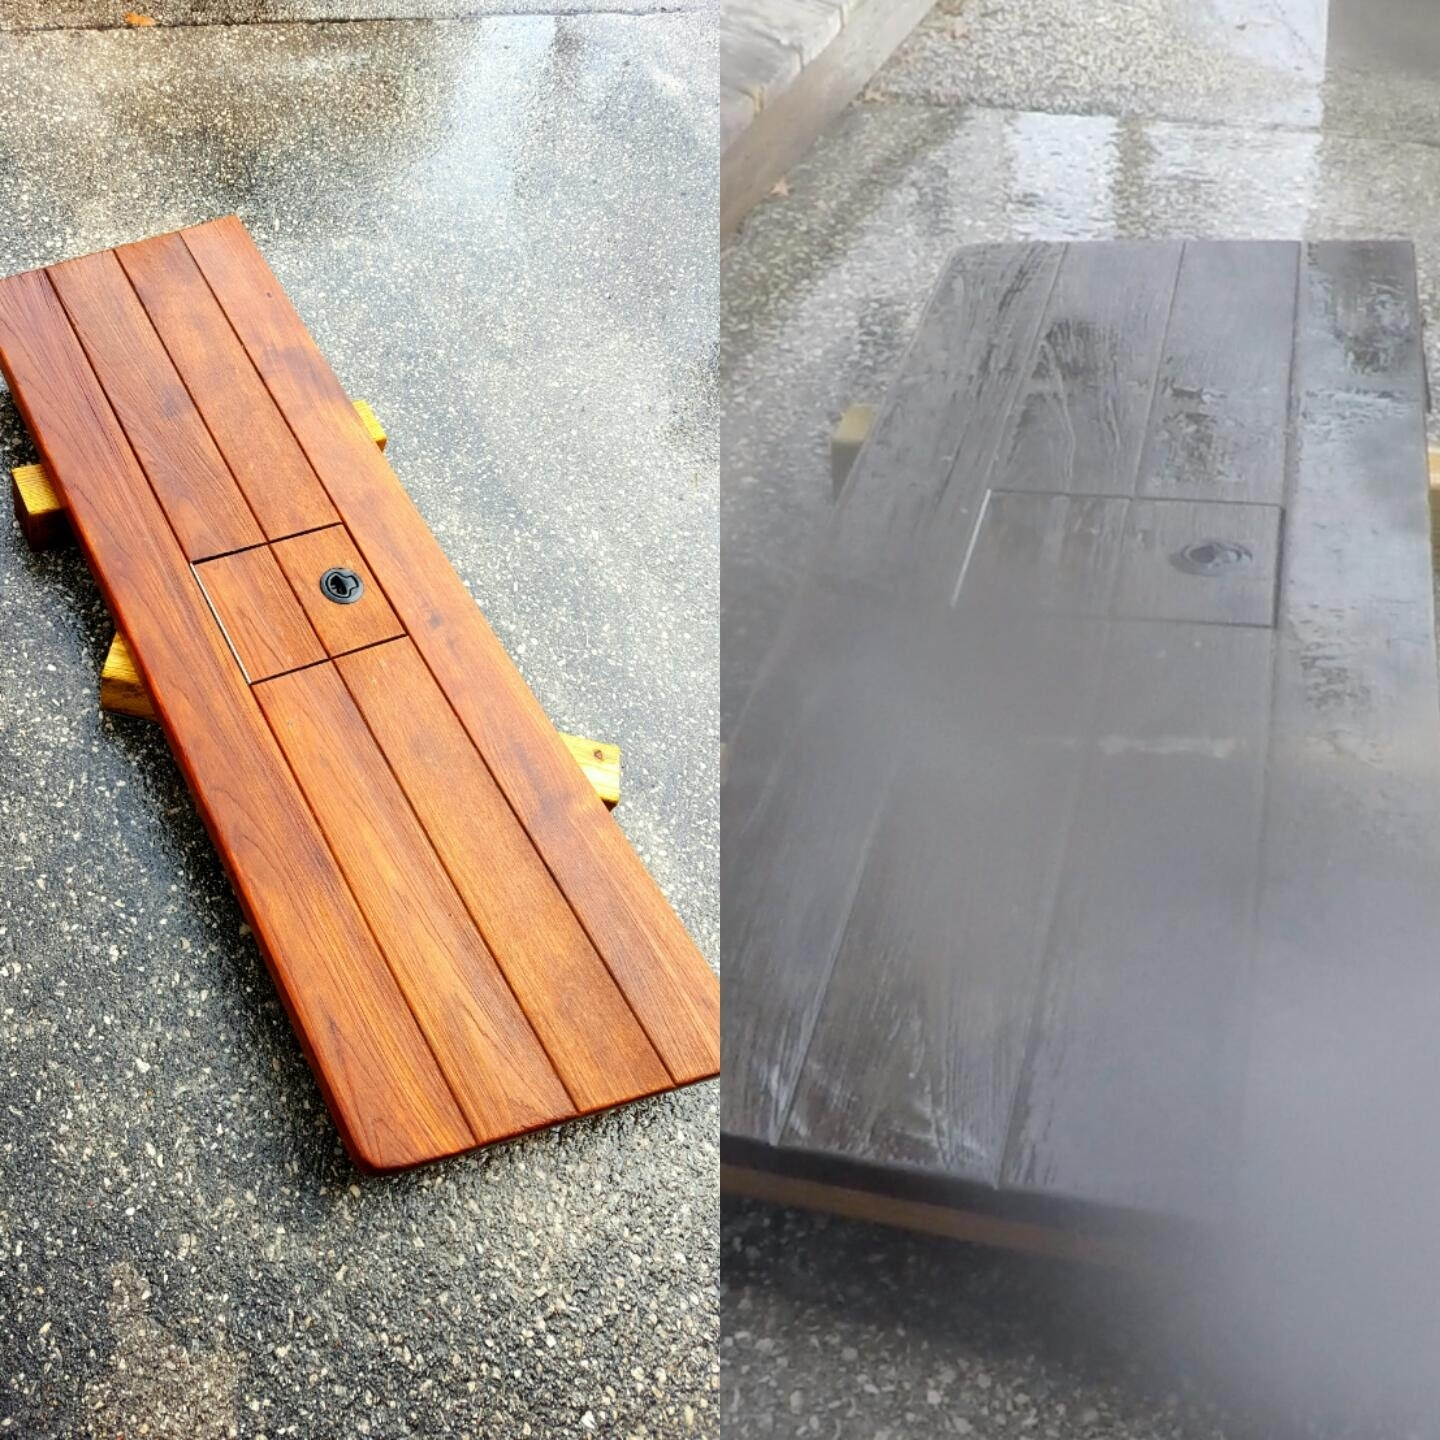 Image of: How To Clean Teak Wood Swim Platform With Pressure Washer And No In Cleaning Outdoor Teak Furniture Ideal Cleaning Outdoor Teak Furniture